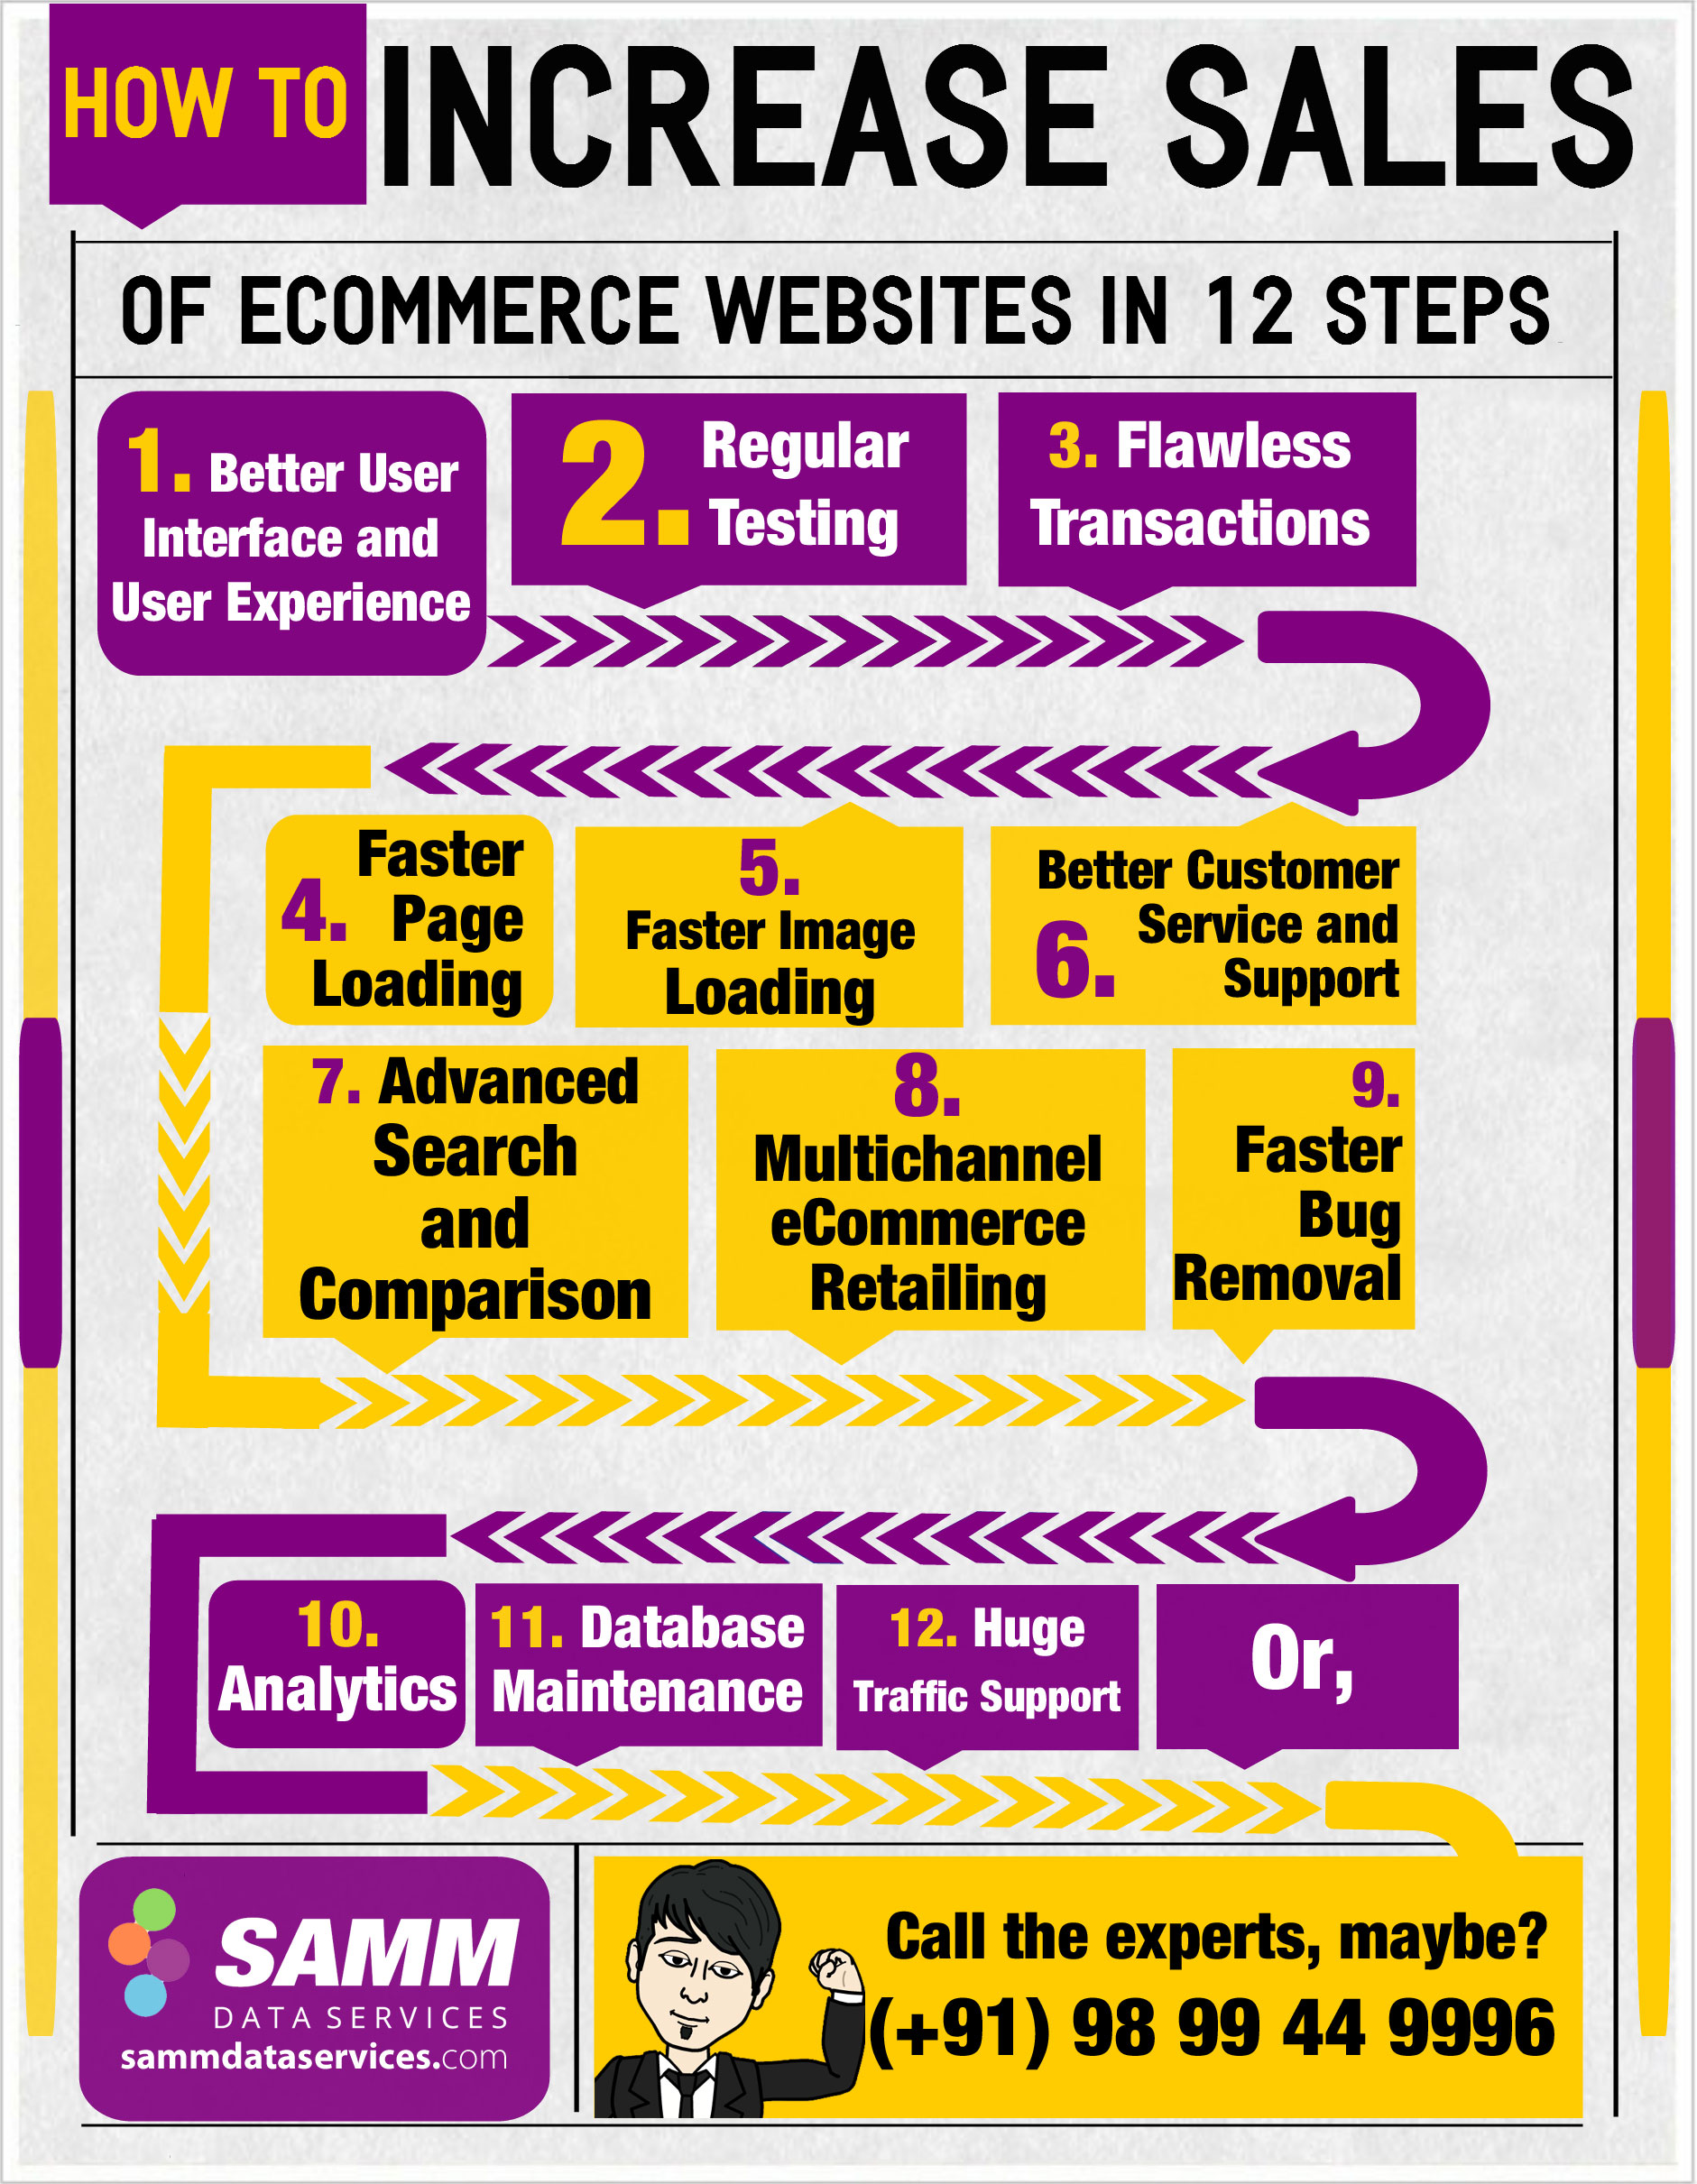 Increase Online Sales of eCommerce Website